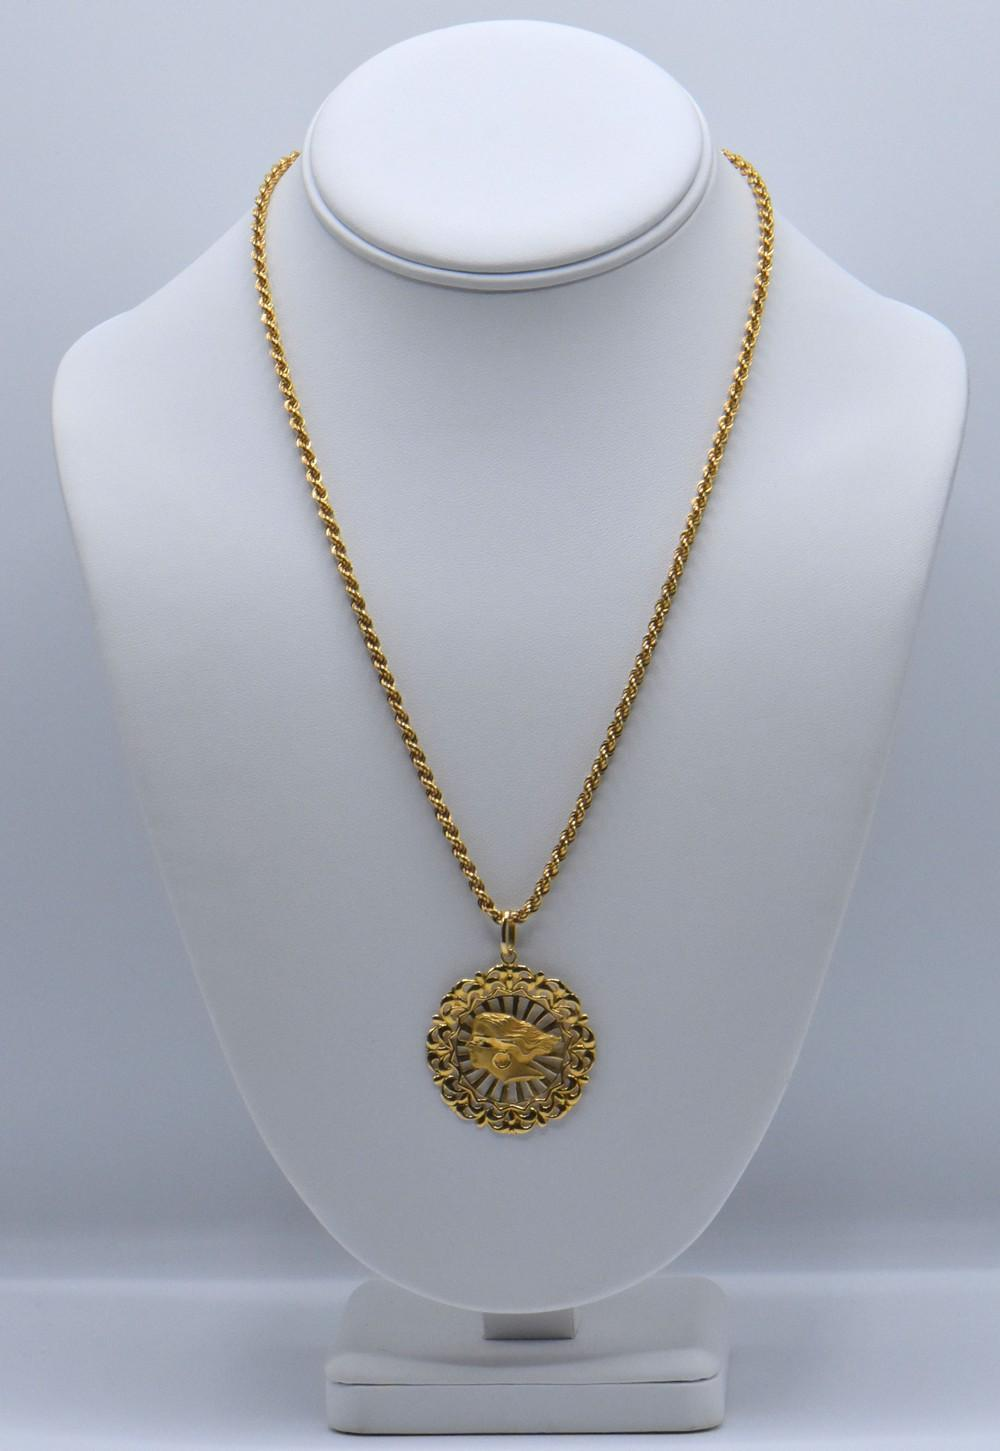 18K Gold Pendant & Chain and 14K Gold Pendant